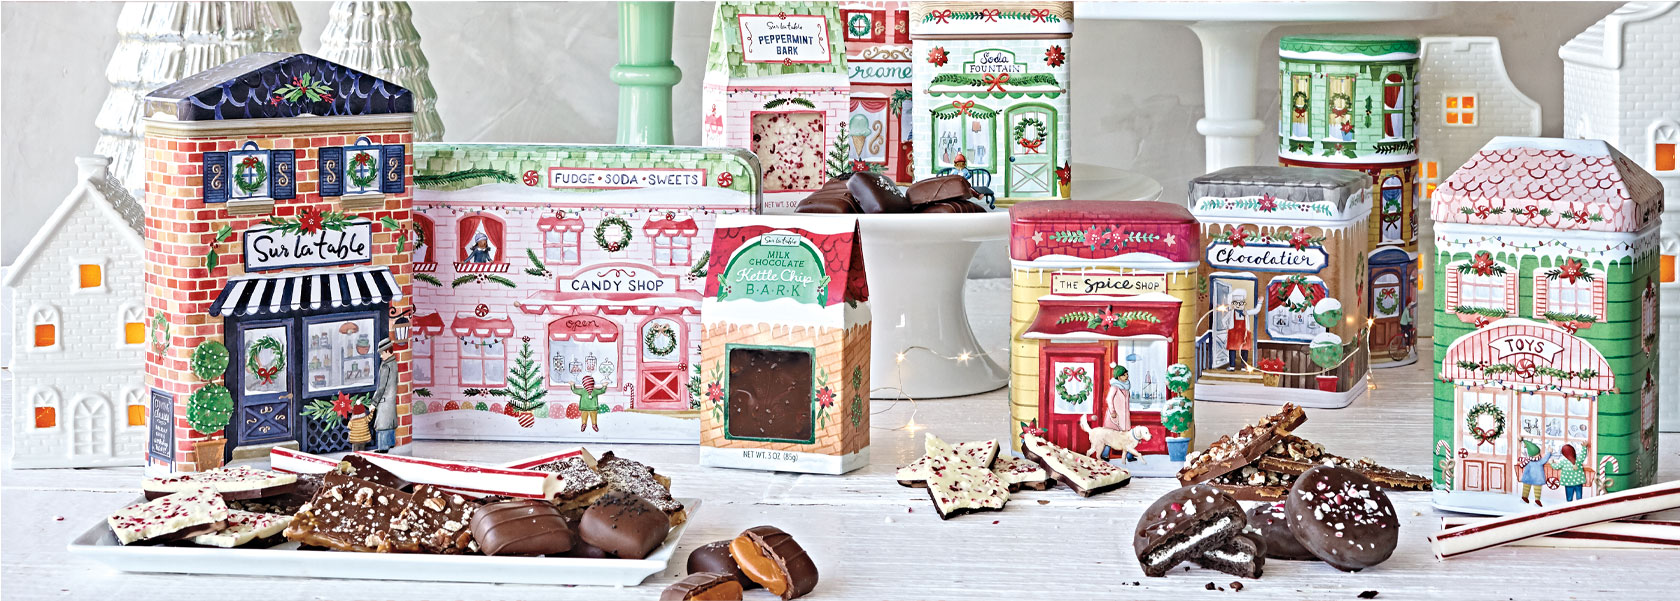 Sur La Table confections in holiday tins